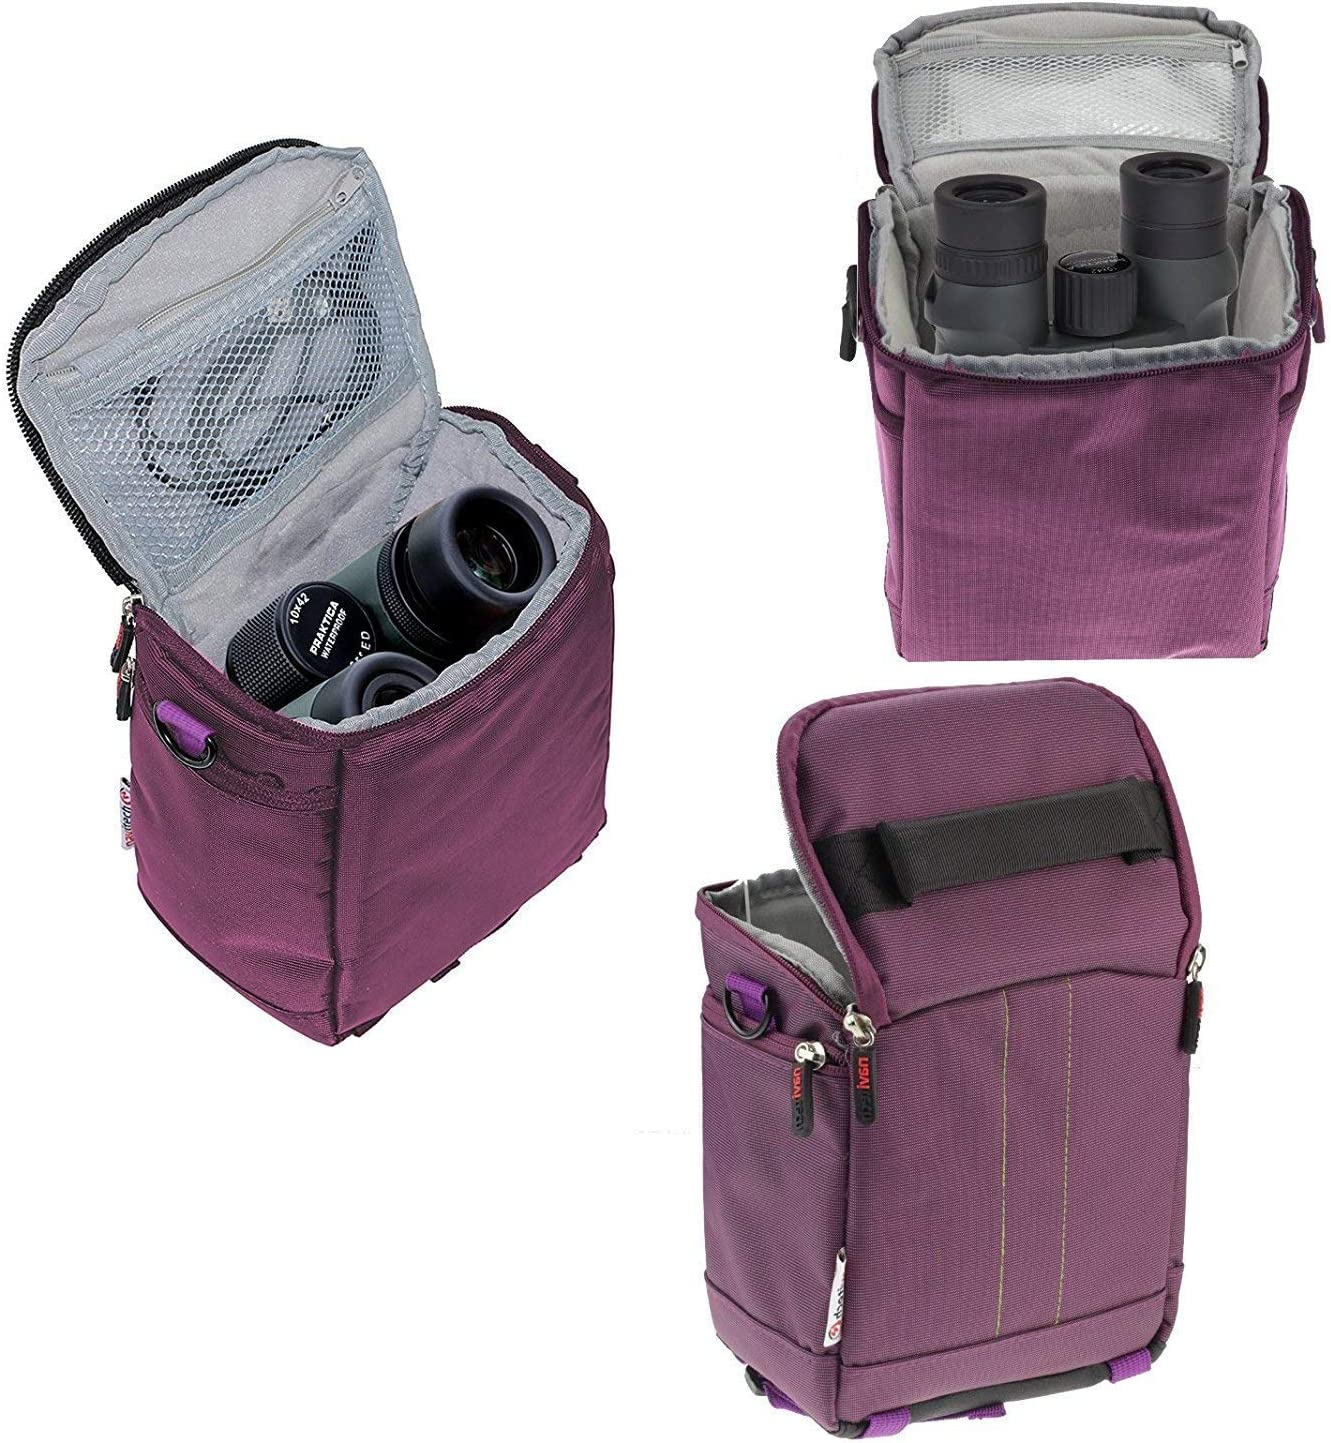 Navitech Purple Protective Portable Handheld Binocular Case and Travel Bag Compatible with The Leica Geovid 10 x 42 HD-B 3000